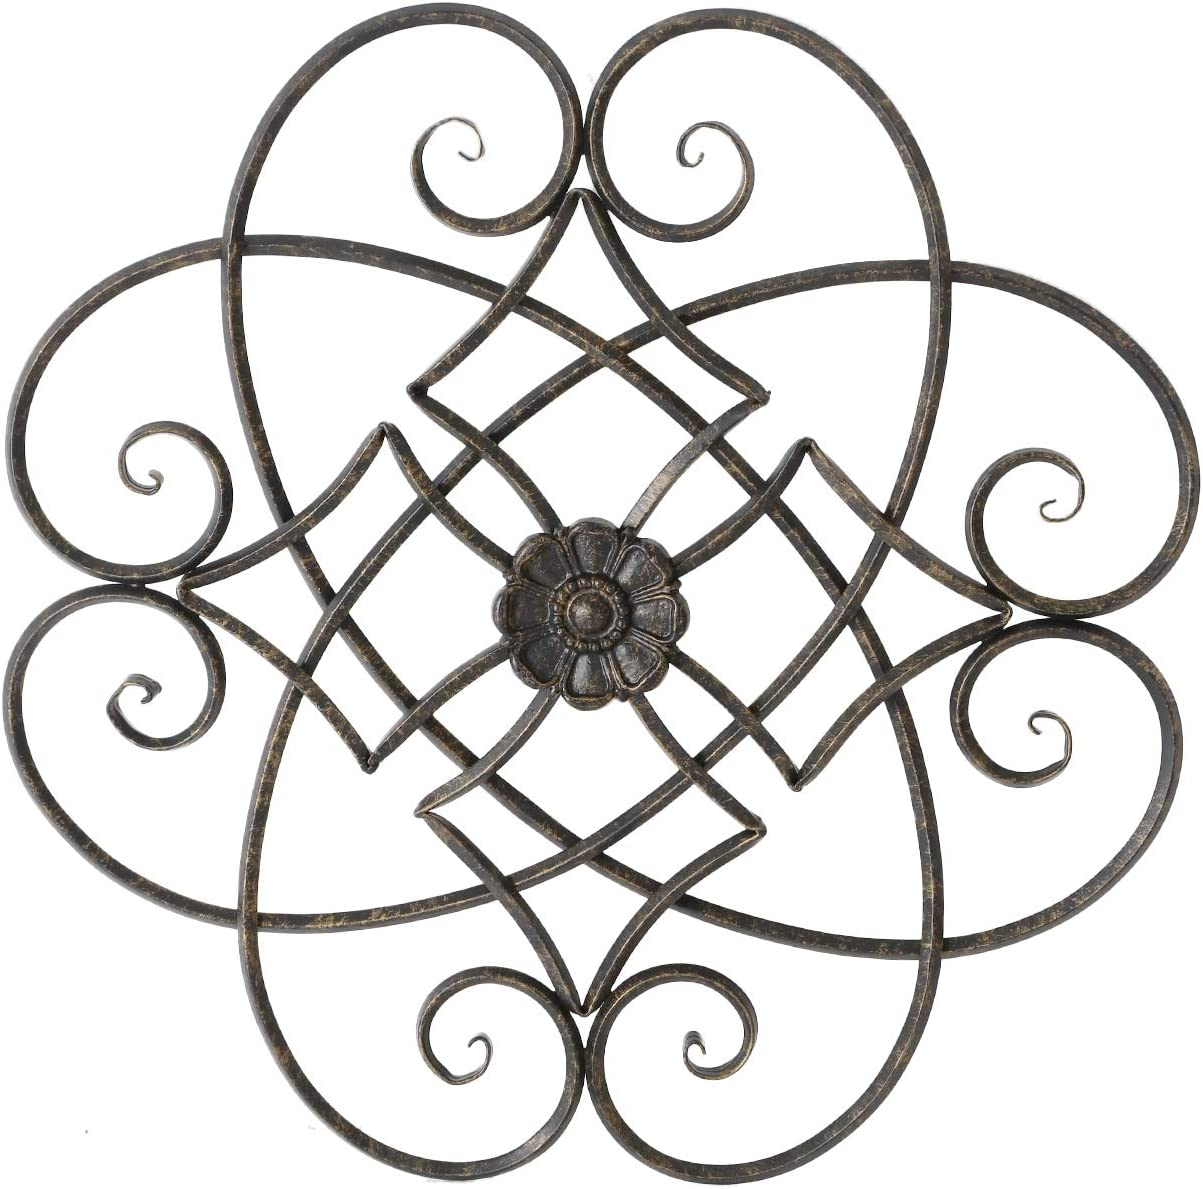 "Adeco Black Scrolled Flower Metal Wall Decor, Art Living Room Home Decoration, 22.5"" X 22.5"""